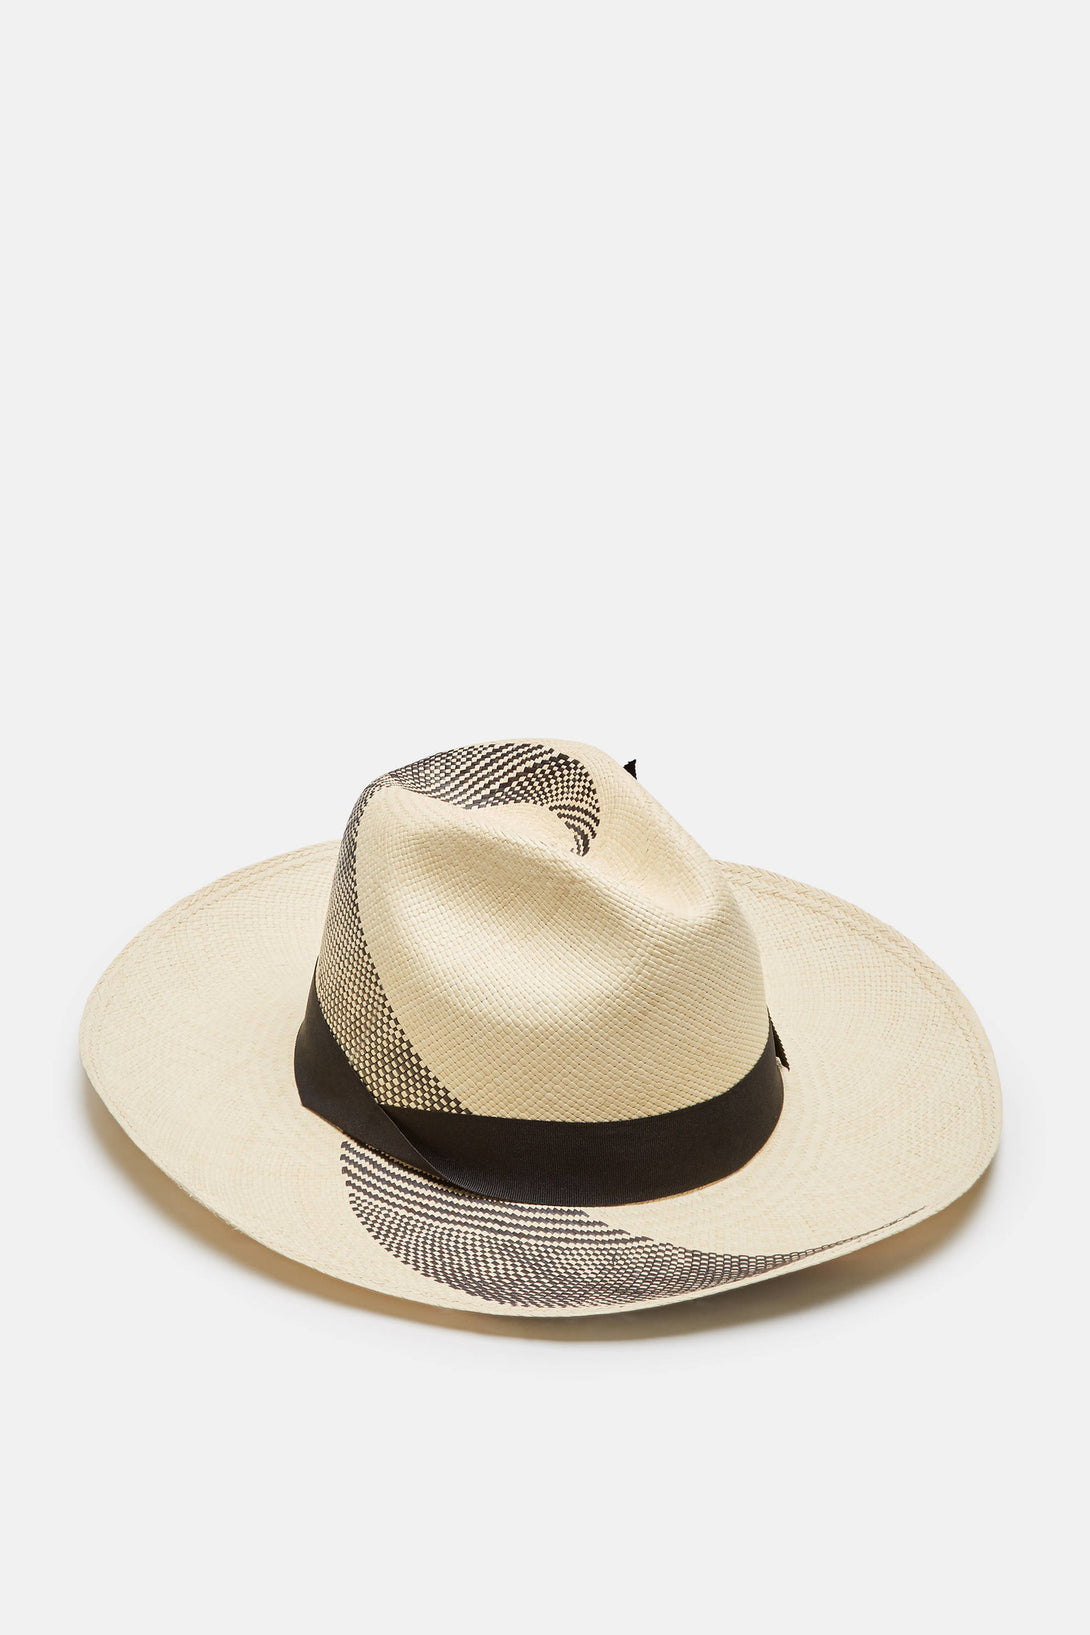 Caracol Long Brim Hat - Natural/Black